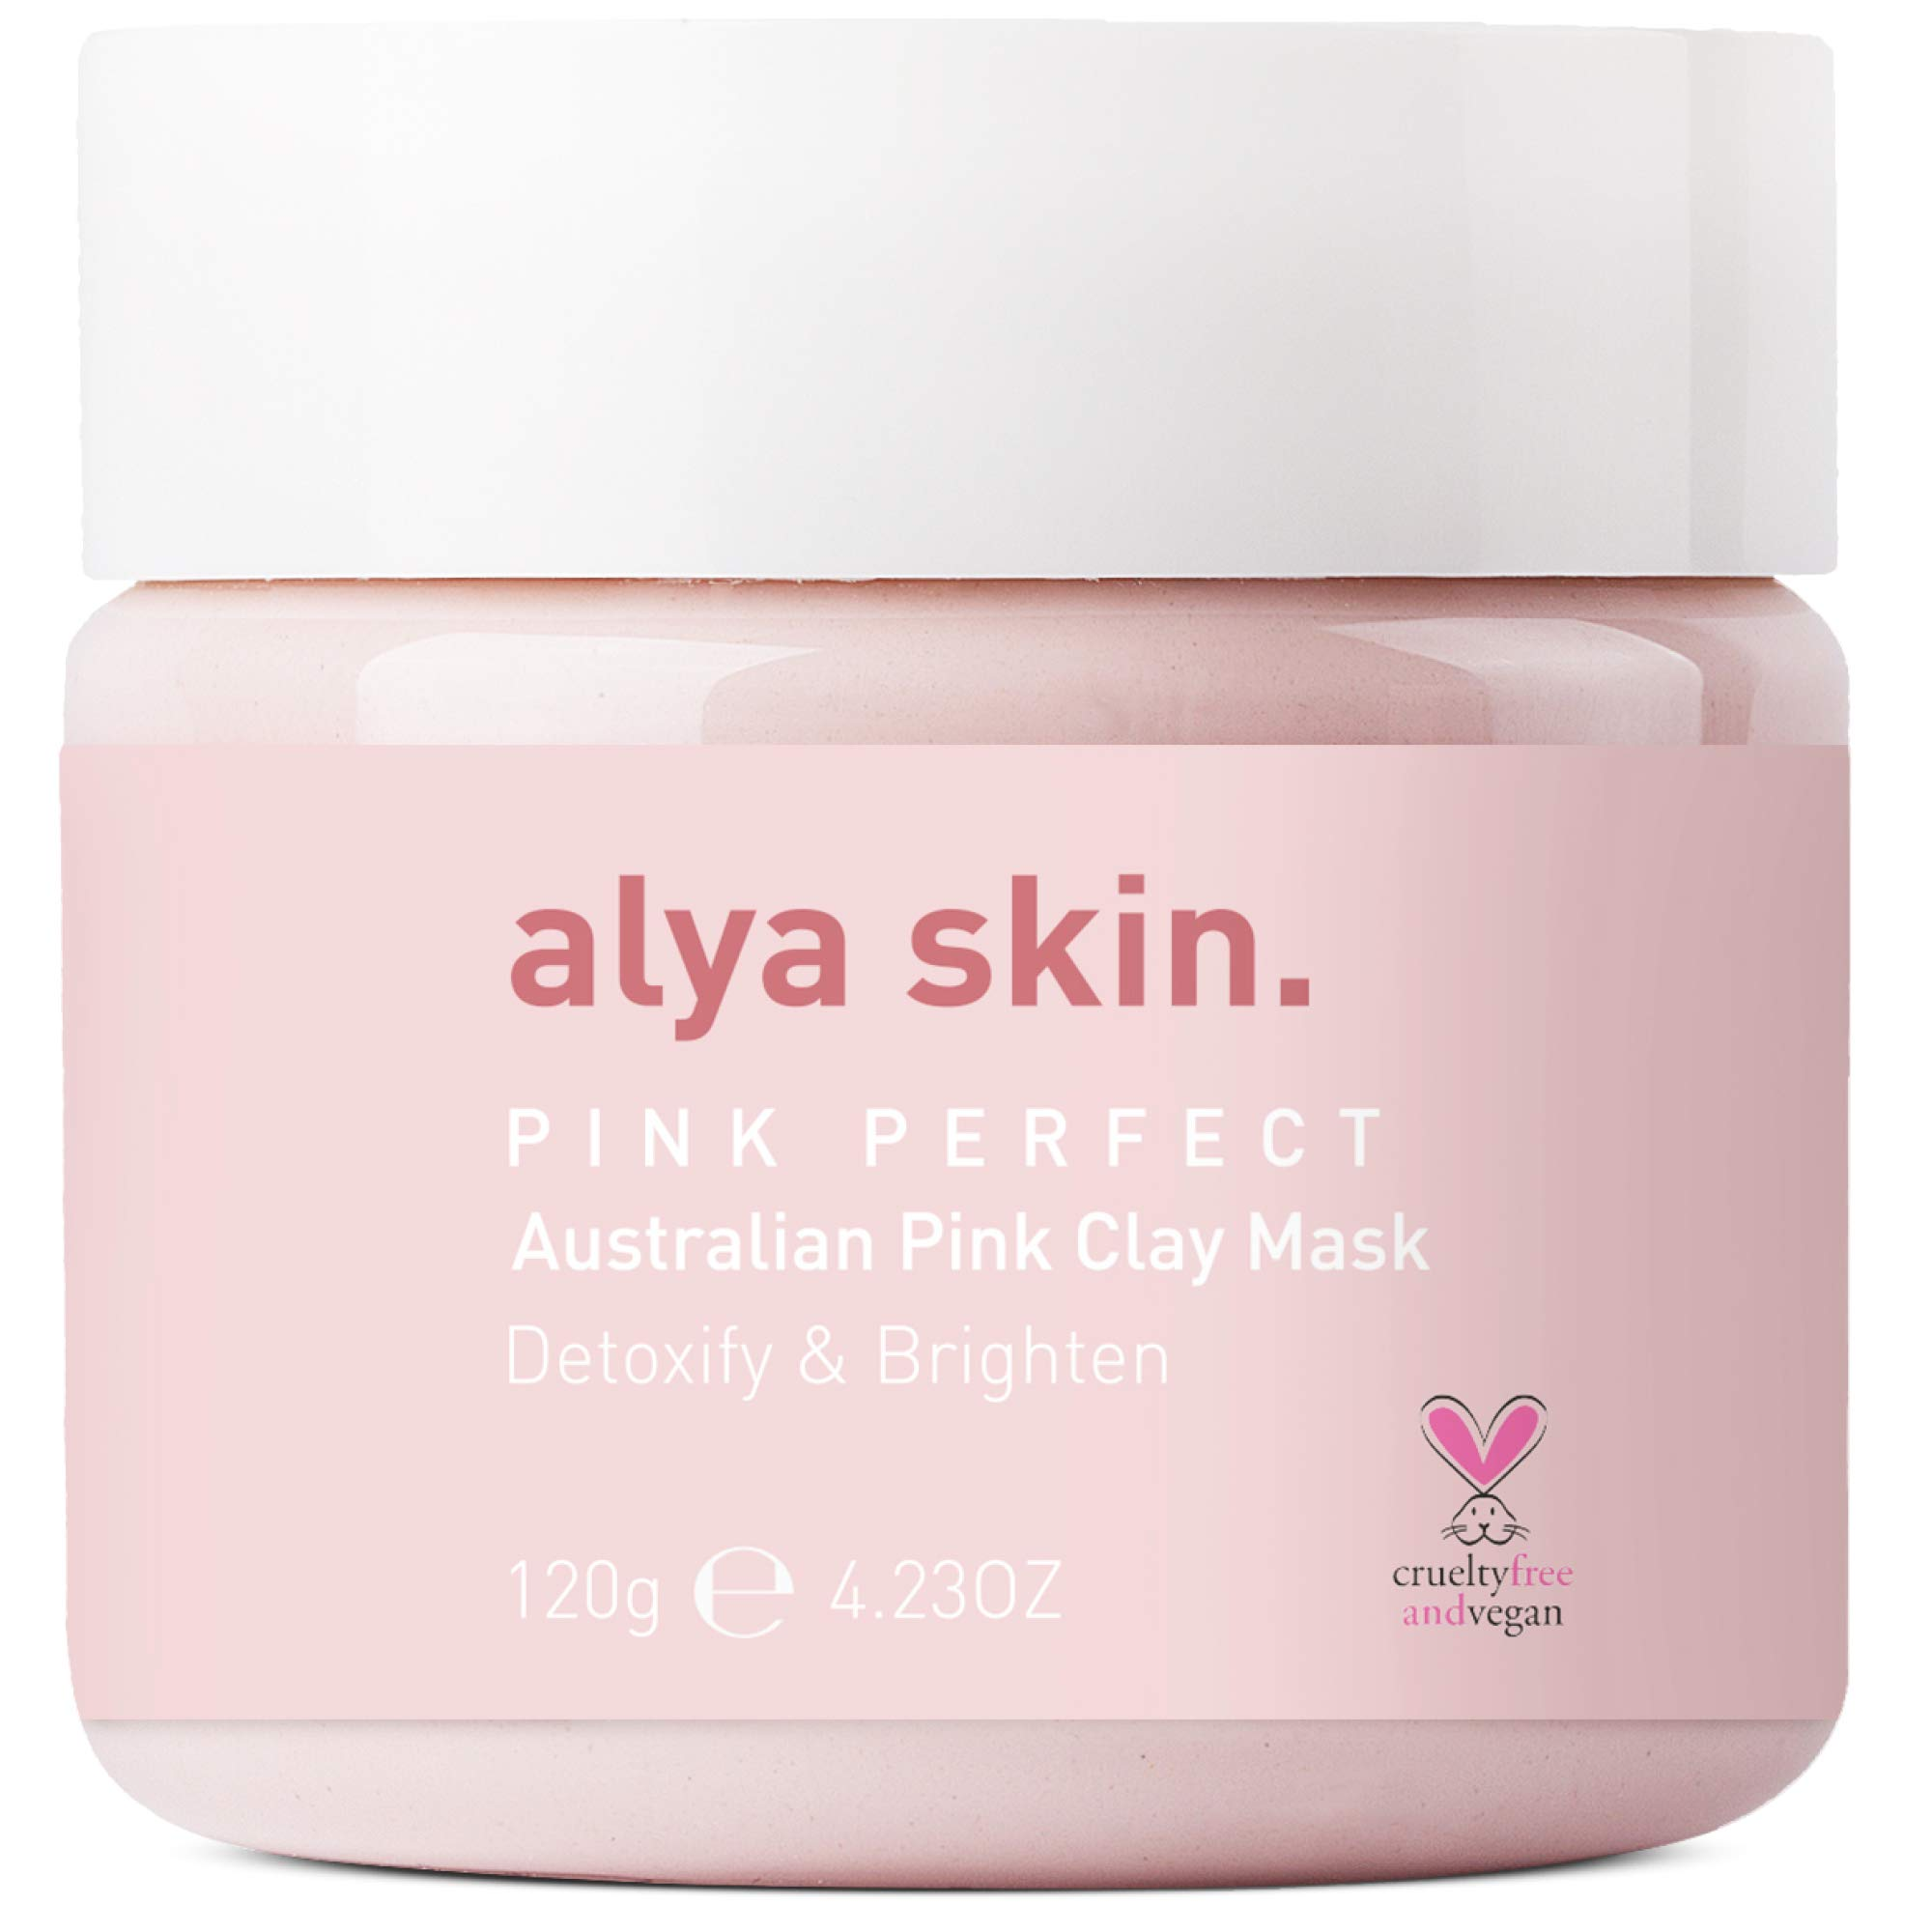 Alya Skin Australian Pink Face Mask - 100% Natural Kaolin Clay with Vitamin E - Deep Pore Skin Cleansing and Detox - Purifying & Brightening Beauty Facial - Cruelty Free & Vegan - 4.32 oz. 120 gm. by Alya Skin